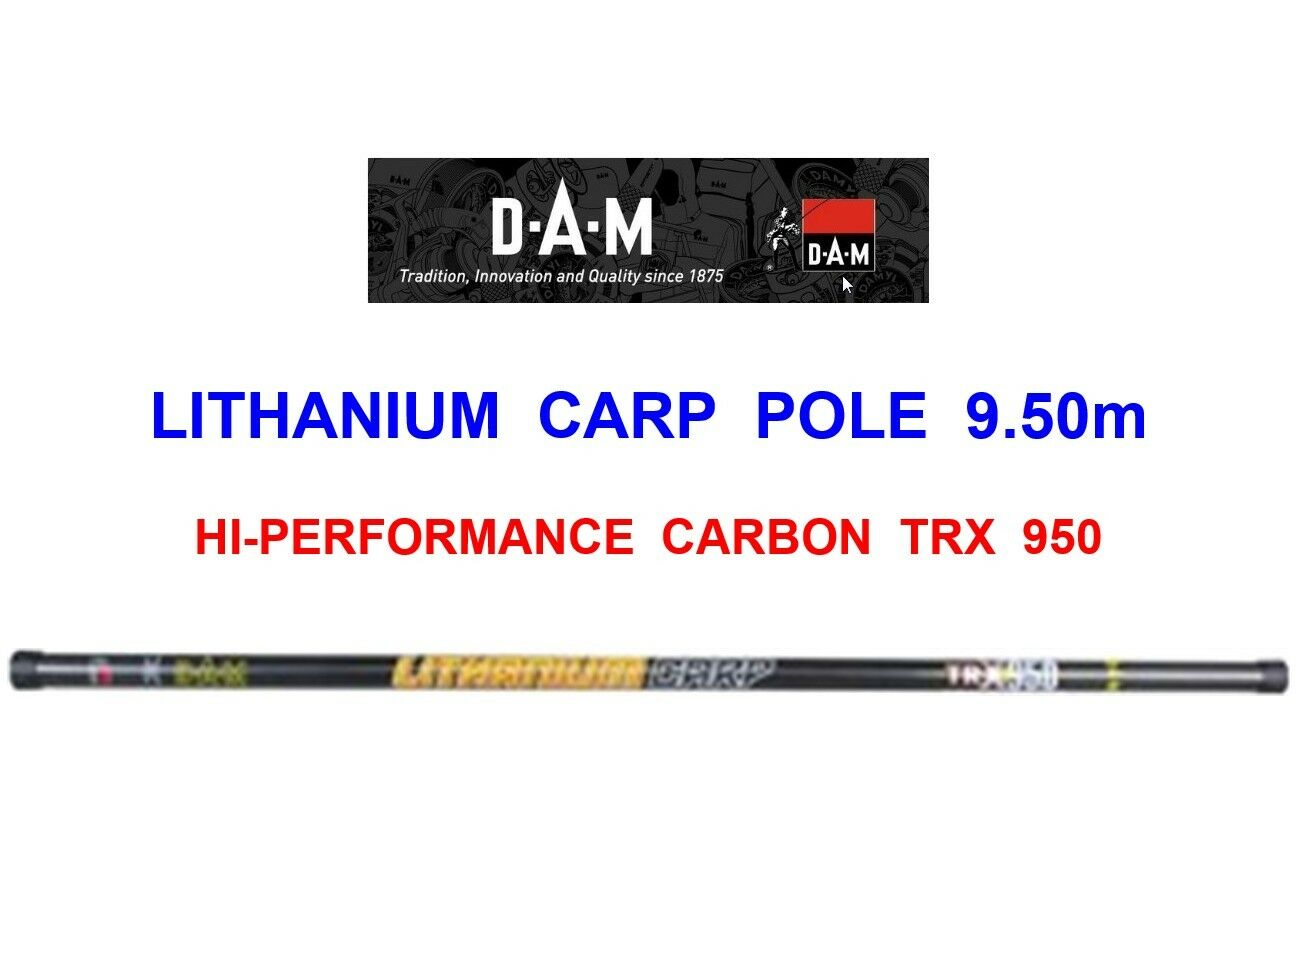 DAM LITHANIUM HI-PERFORMANCE CARBON CARP TRX950 POLE COARSE FISHING ROD PUT OVER